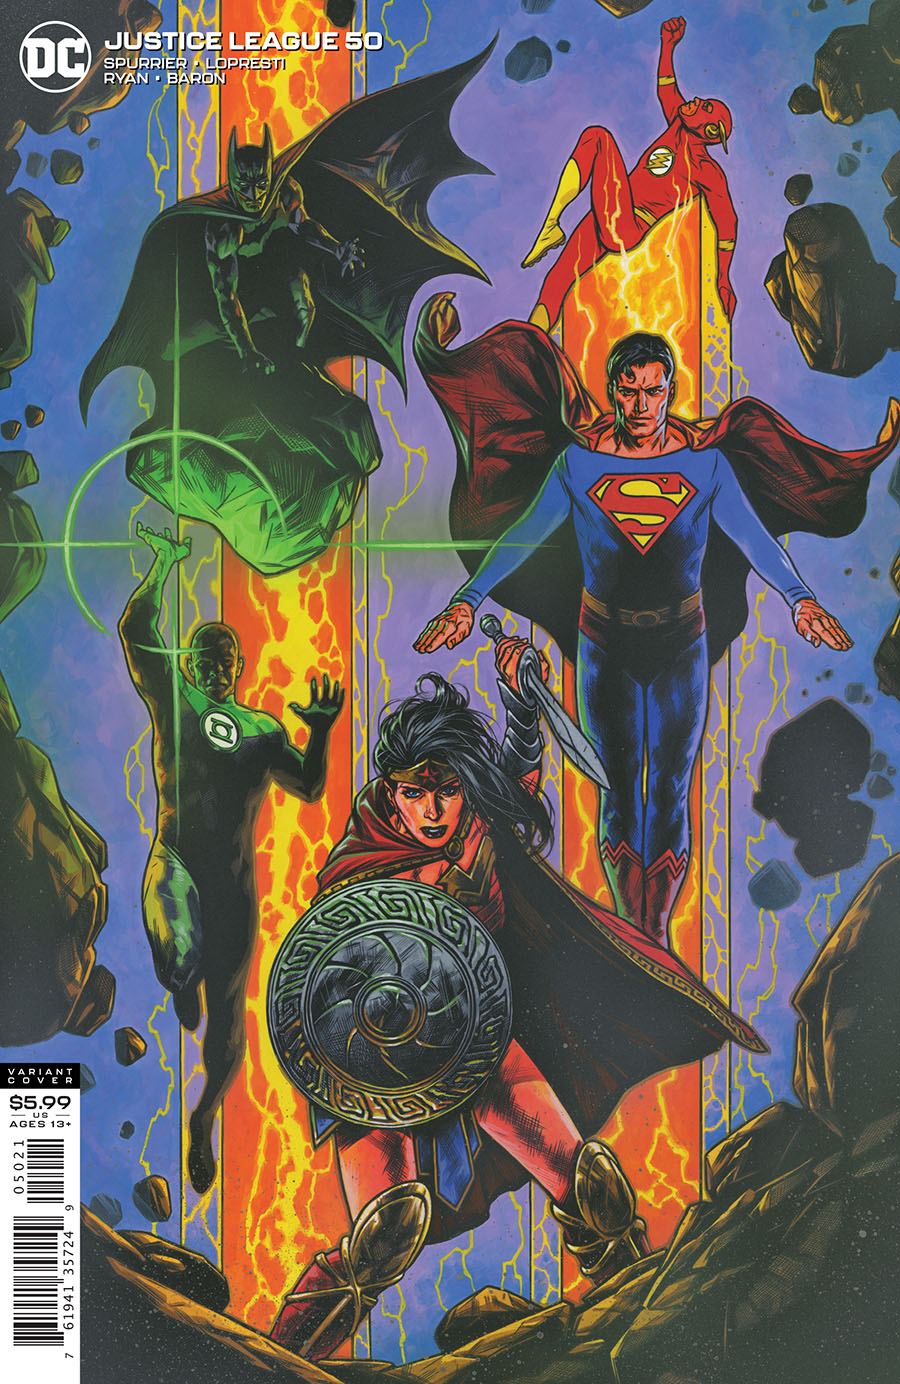 Justice League Vol 4 #50 Cover B Variant Travis Charest Cover